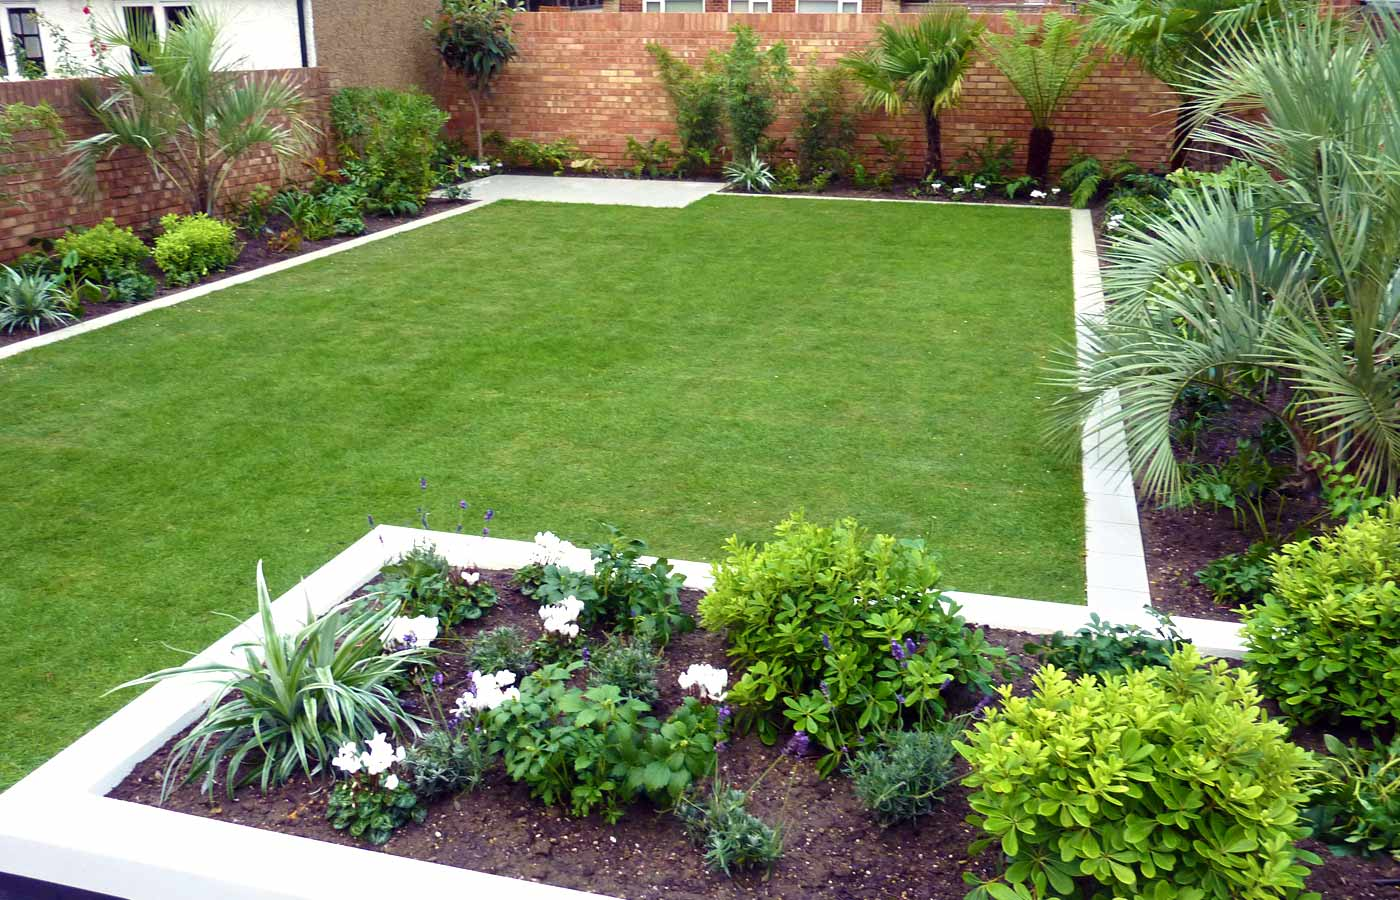 Keeping your garden weed free my decorative for Best home lawn designs